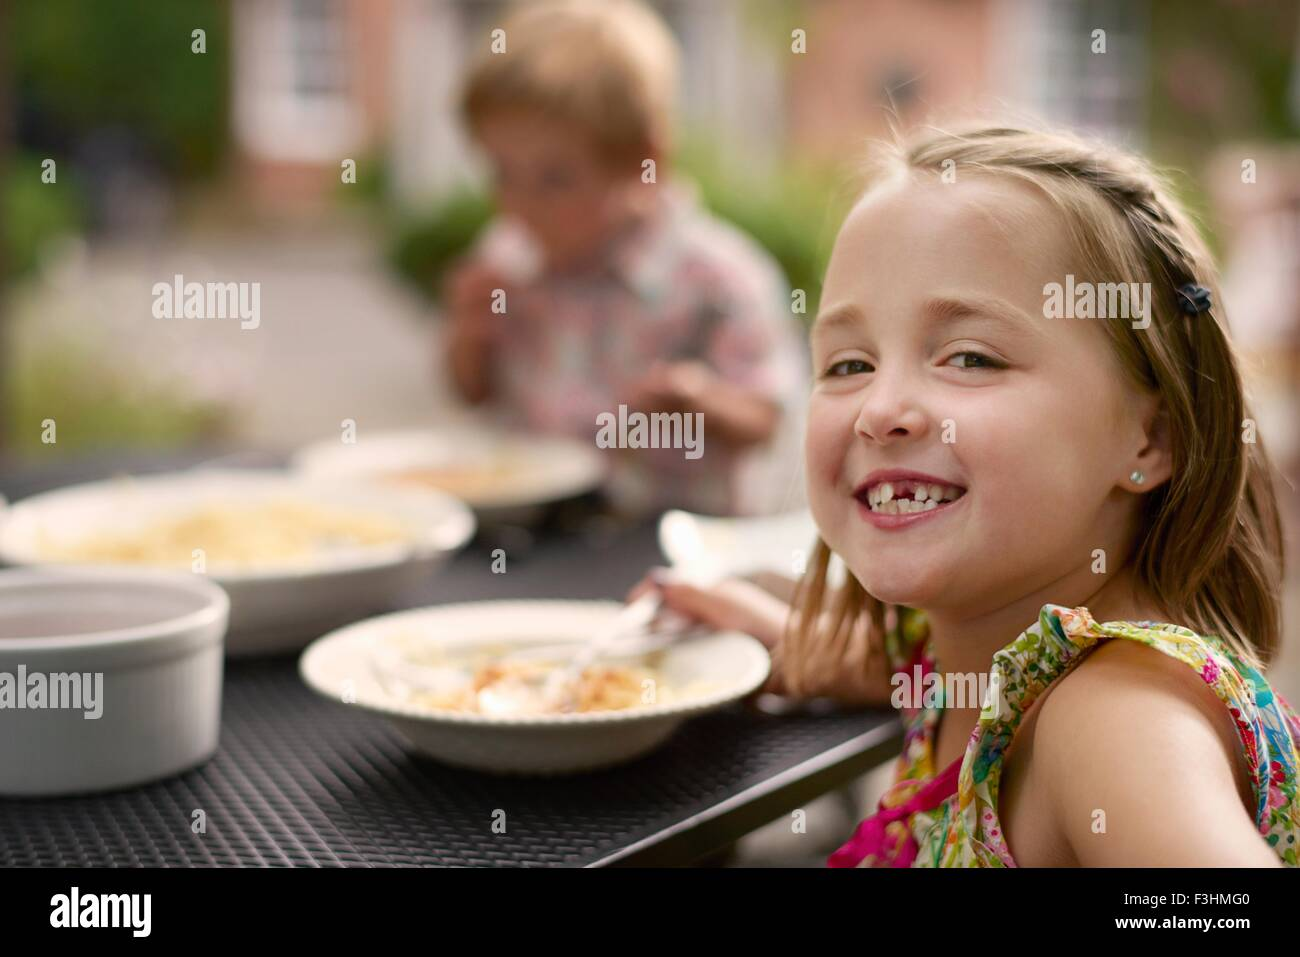 Girl dining at garden table, looking over shoulder smiling at camera - Stock Image